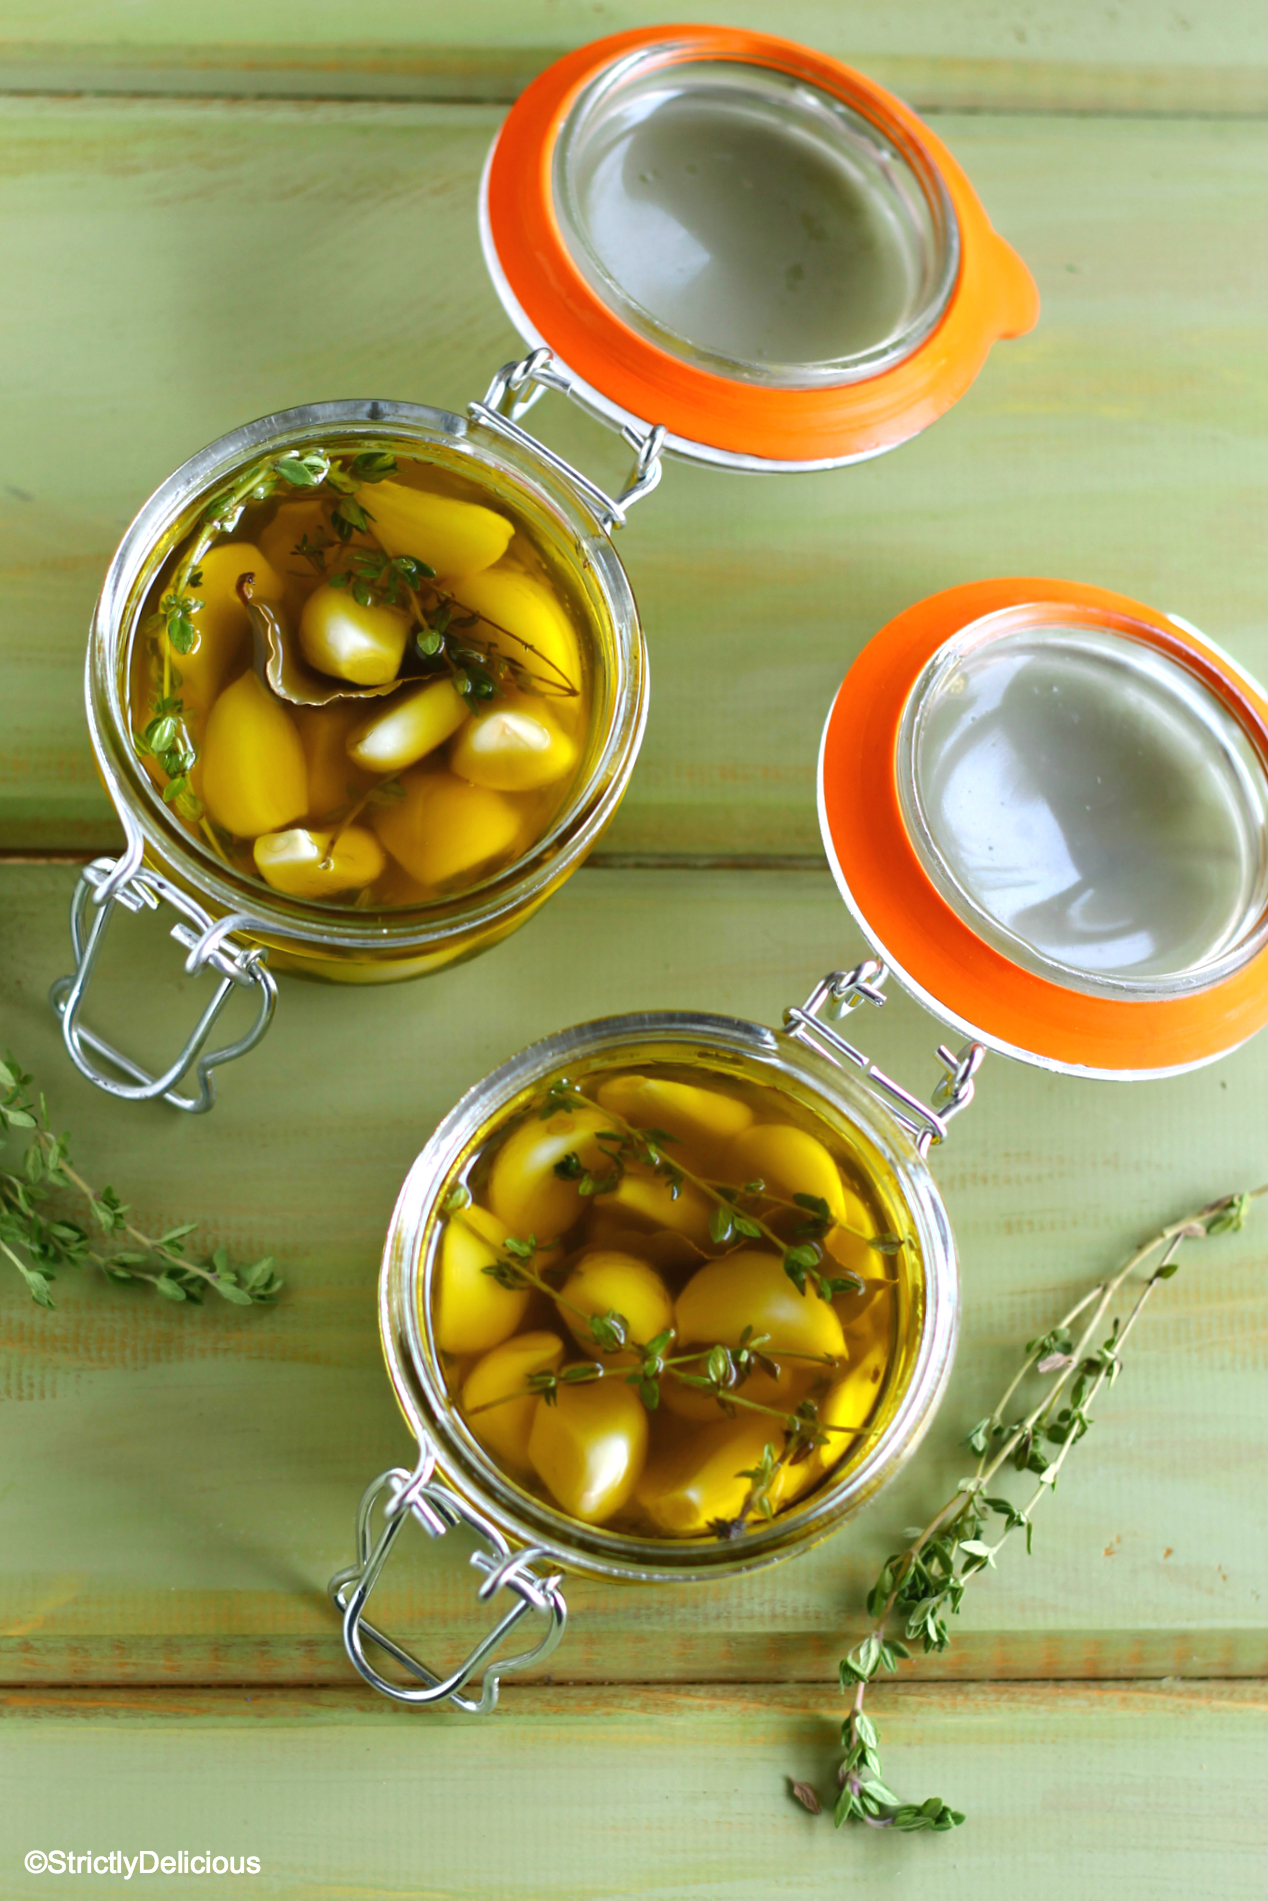 How to Pickle Garlic in Olive Oil (Easy Refrigerator Pickled Garlic & Herbs)